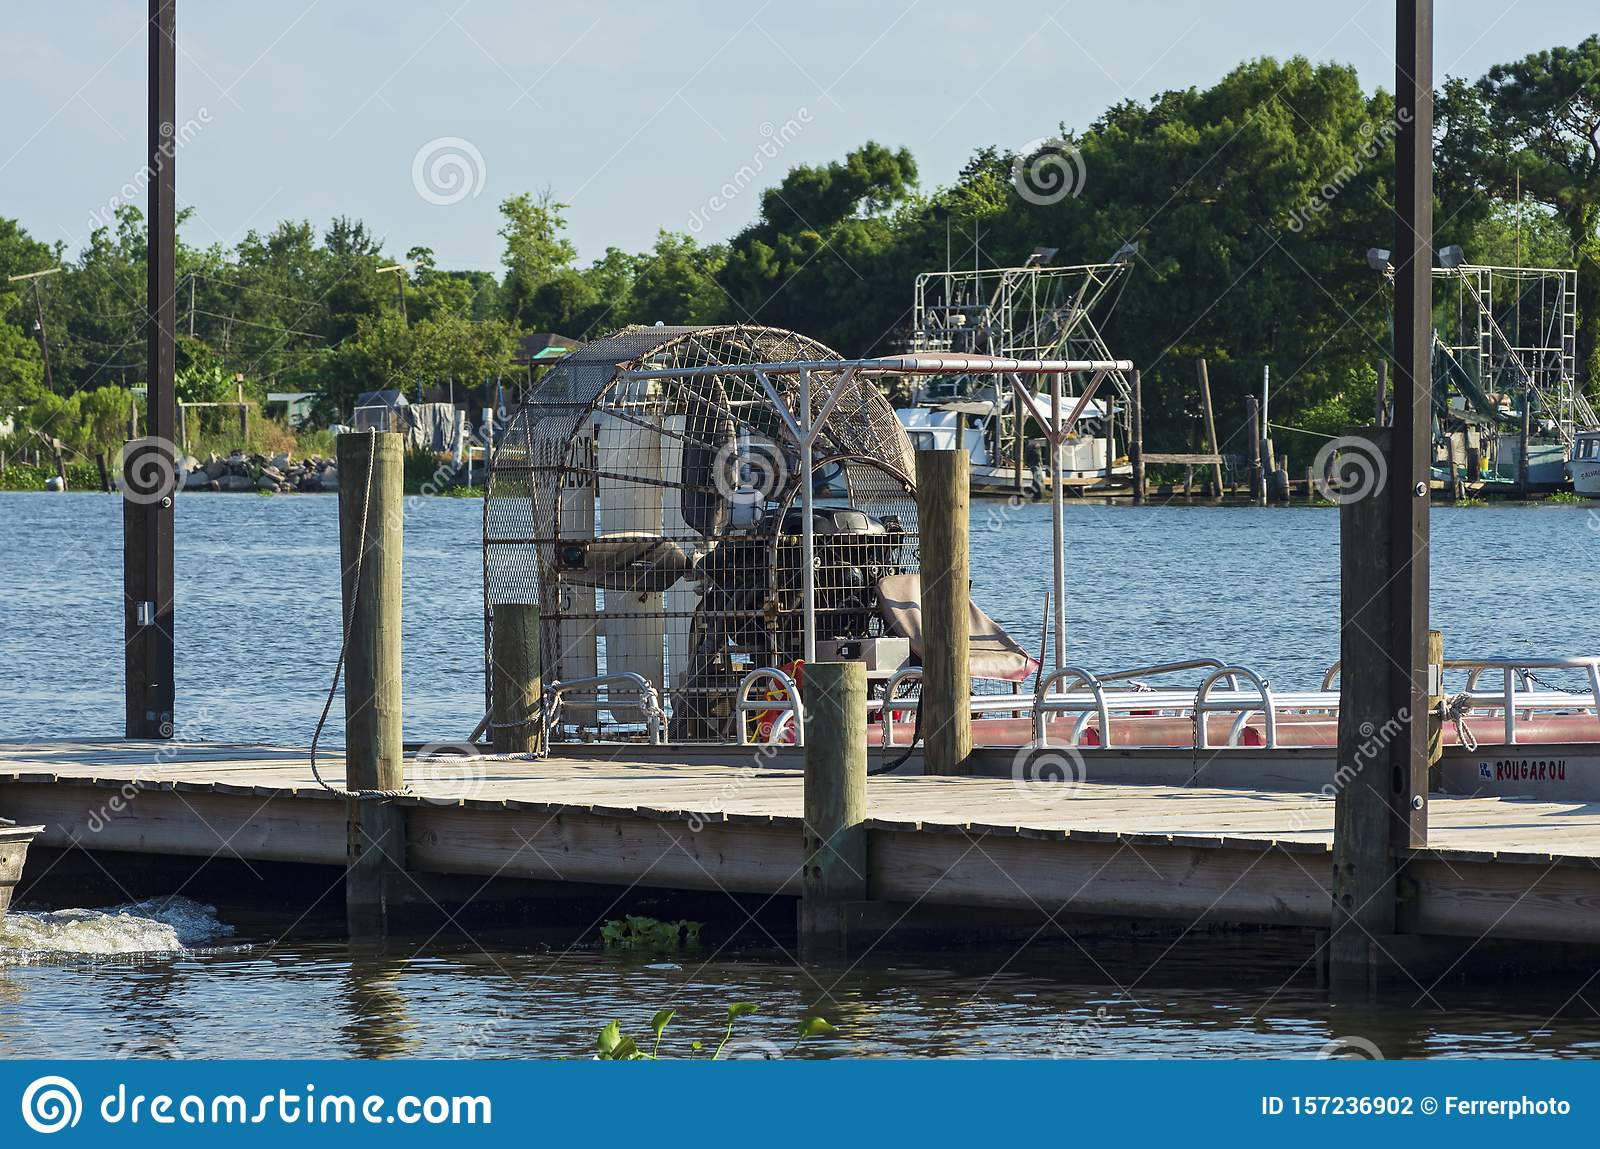 Airboat Docked at Pier in Jean Lafitte